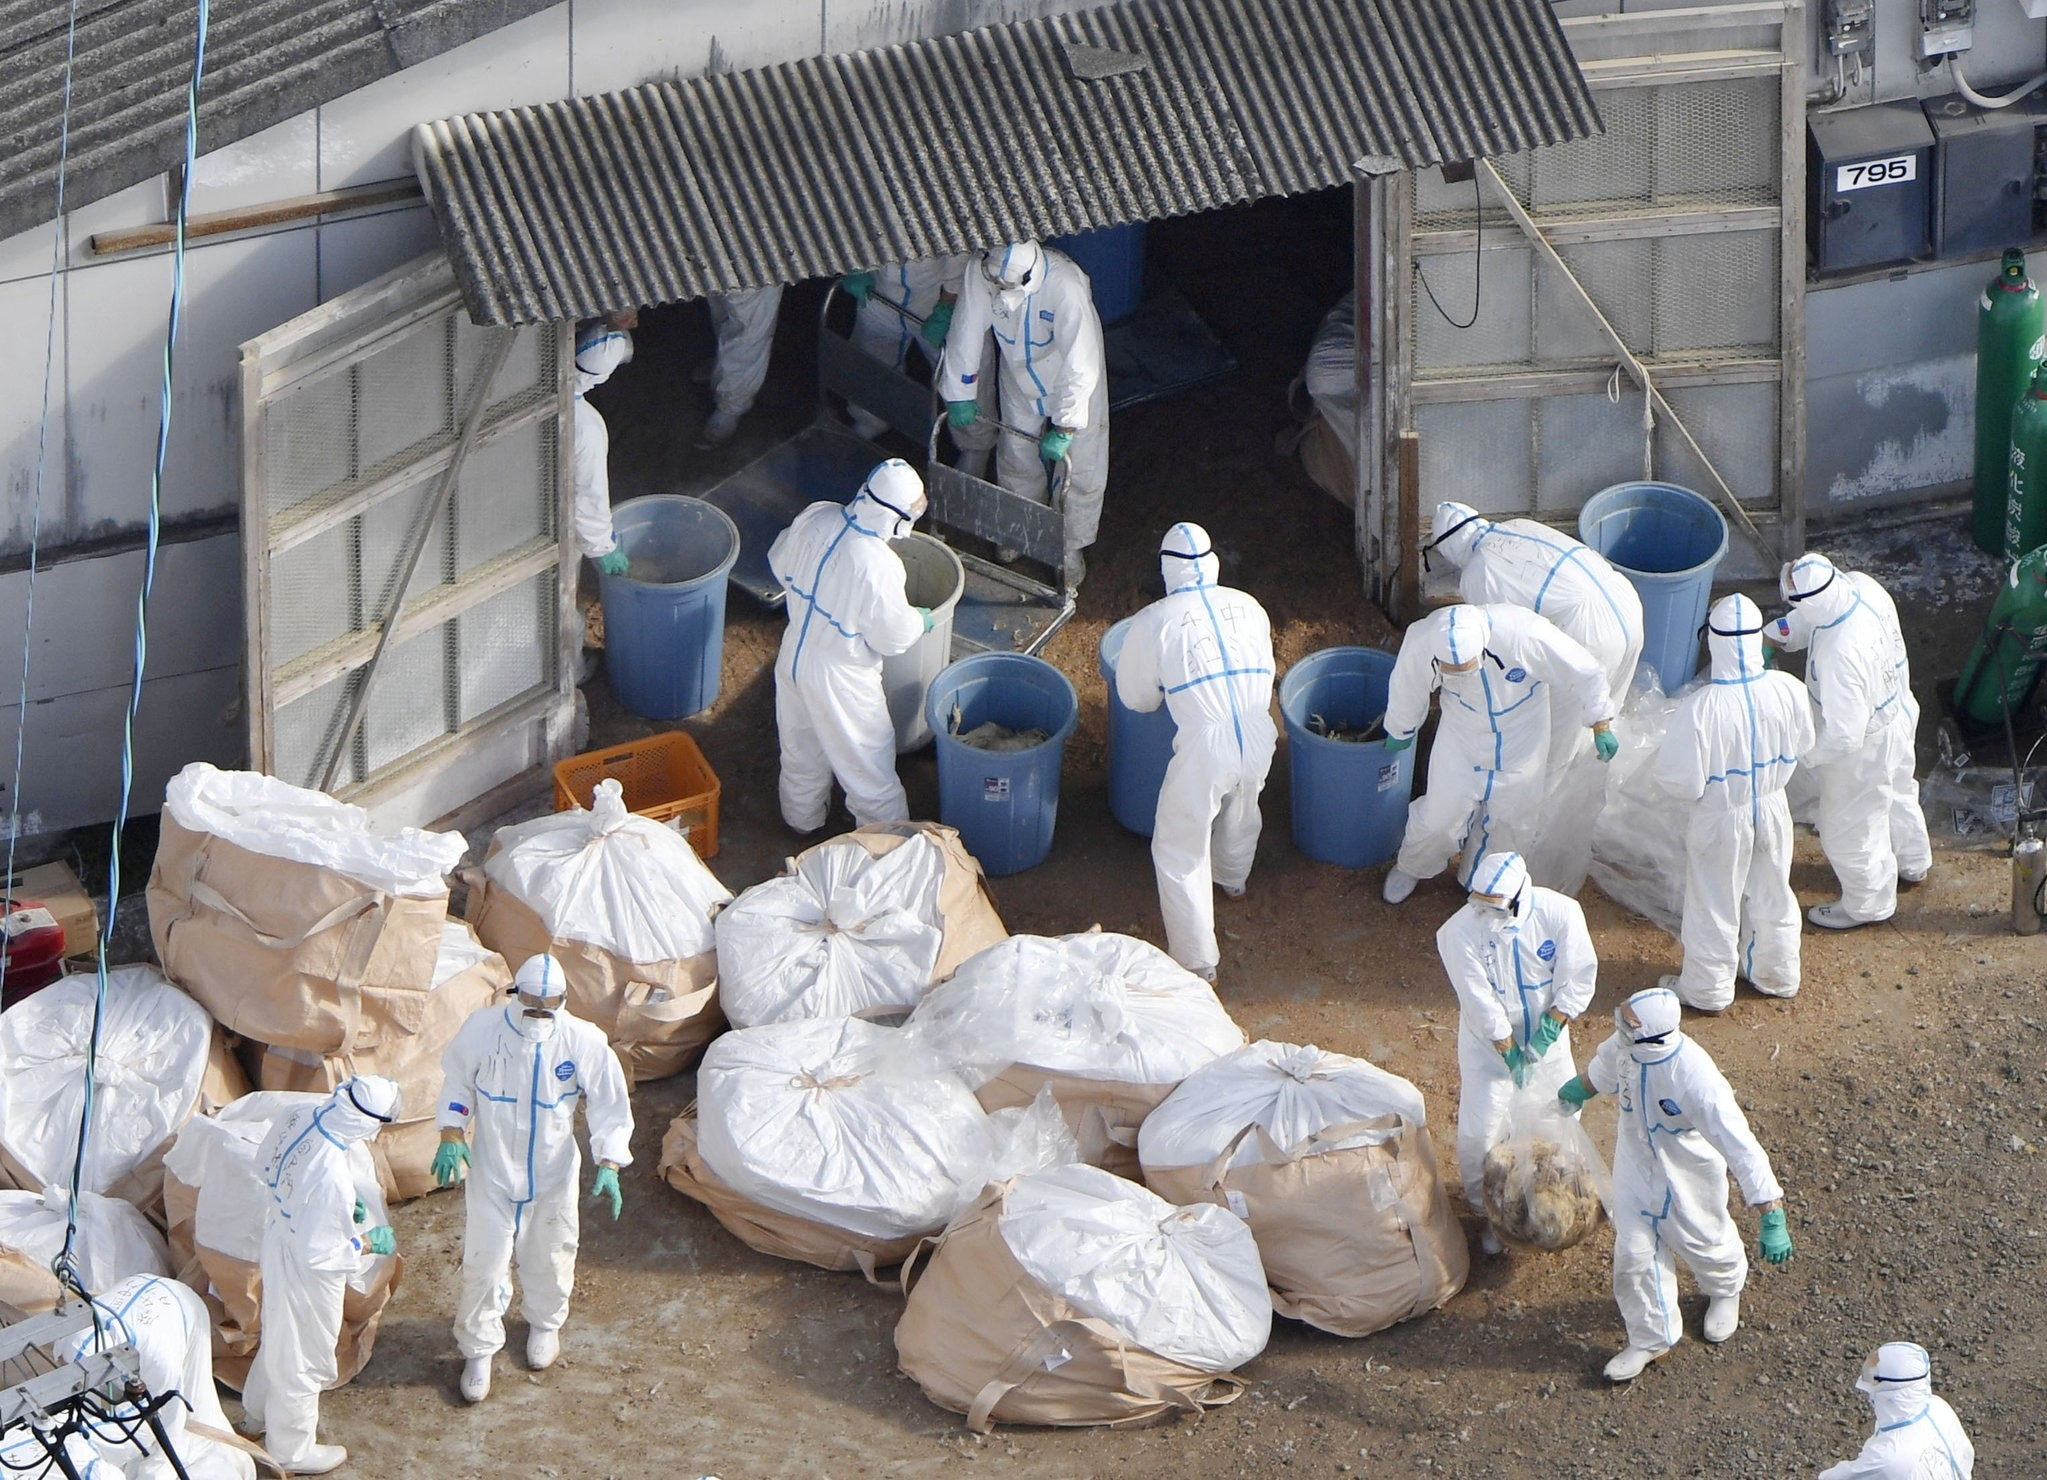 Work begins at a poultry farm in Kawaminami, Miyazaki Prefecture, southwestern Japan to bury chickens culled. (REUTERS PHOTO)